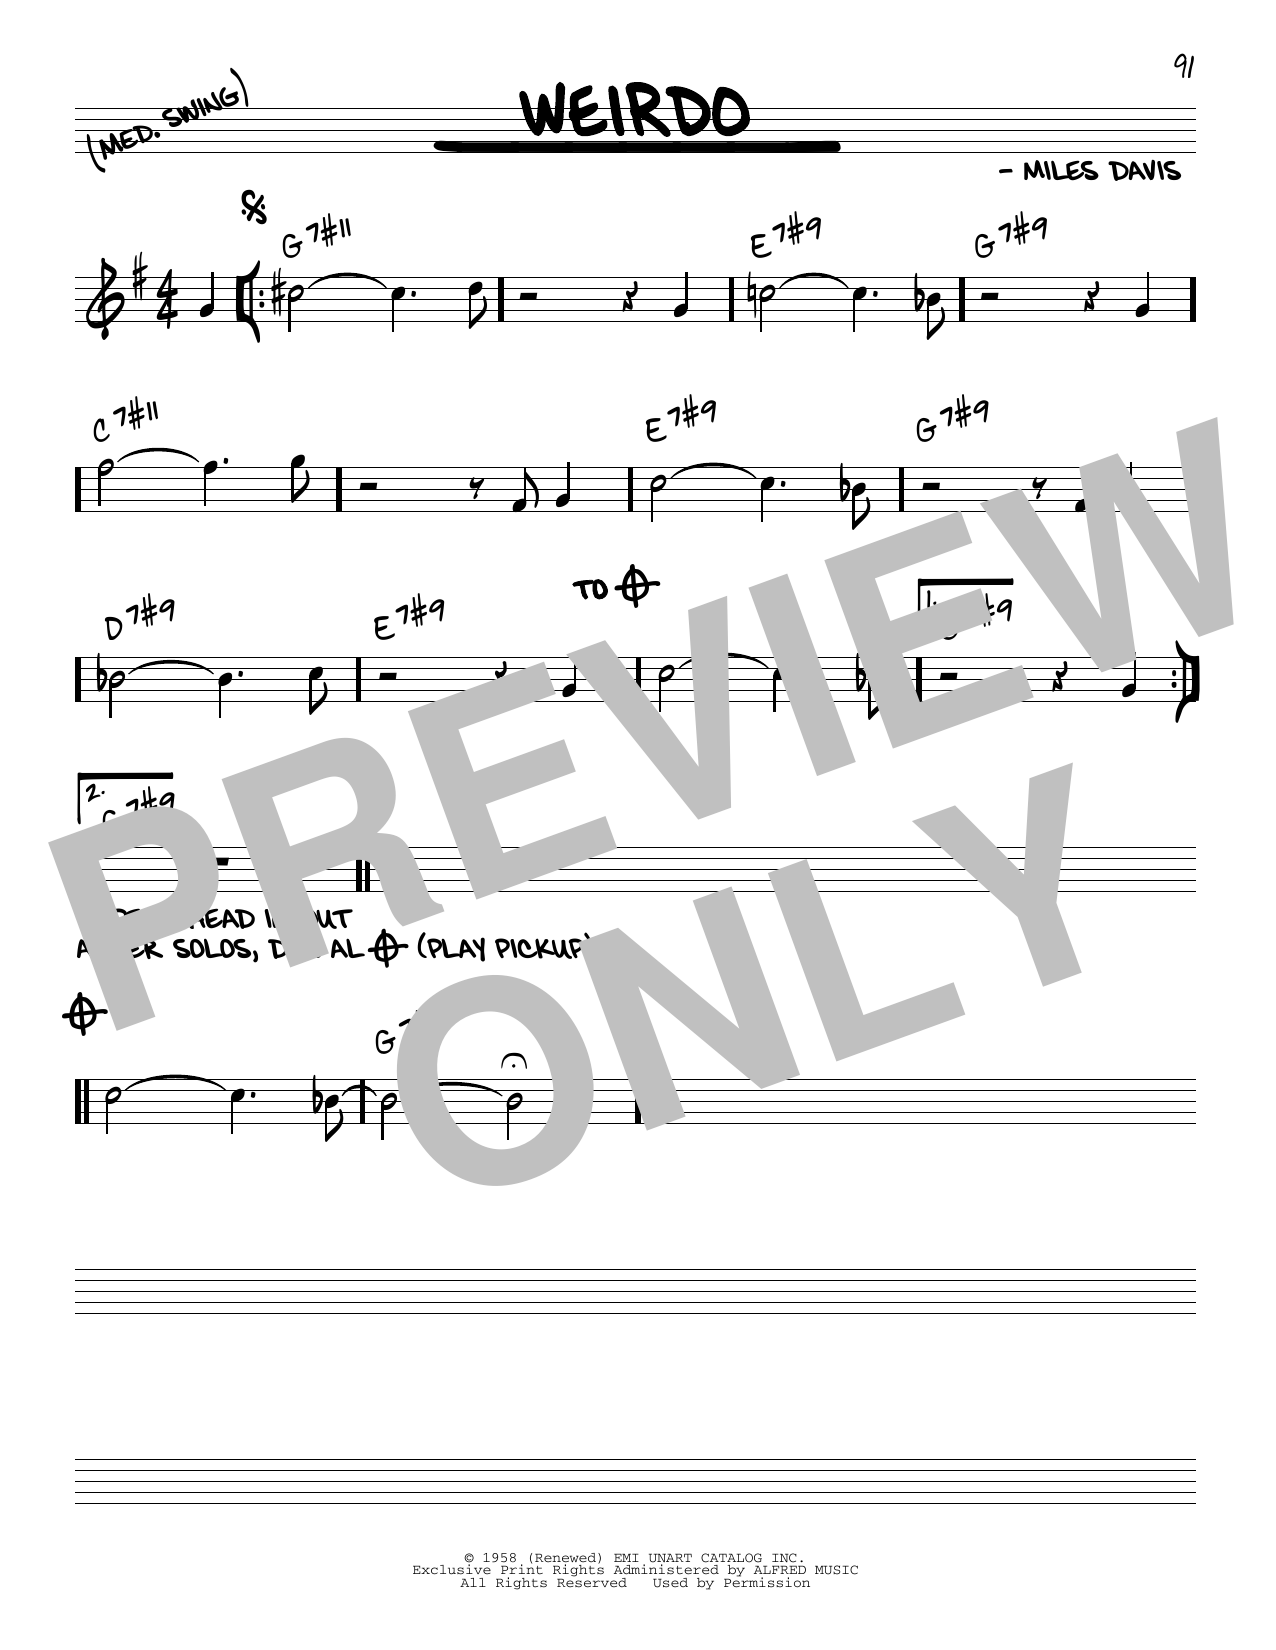 Miles Davis Weirdo sheet music notes and chords. Download Printable PDF.